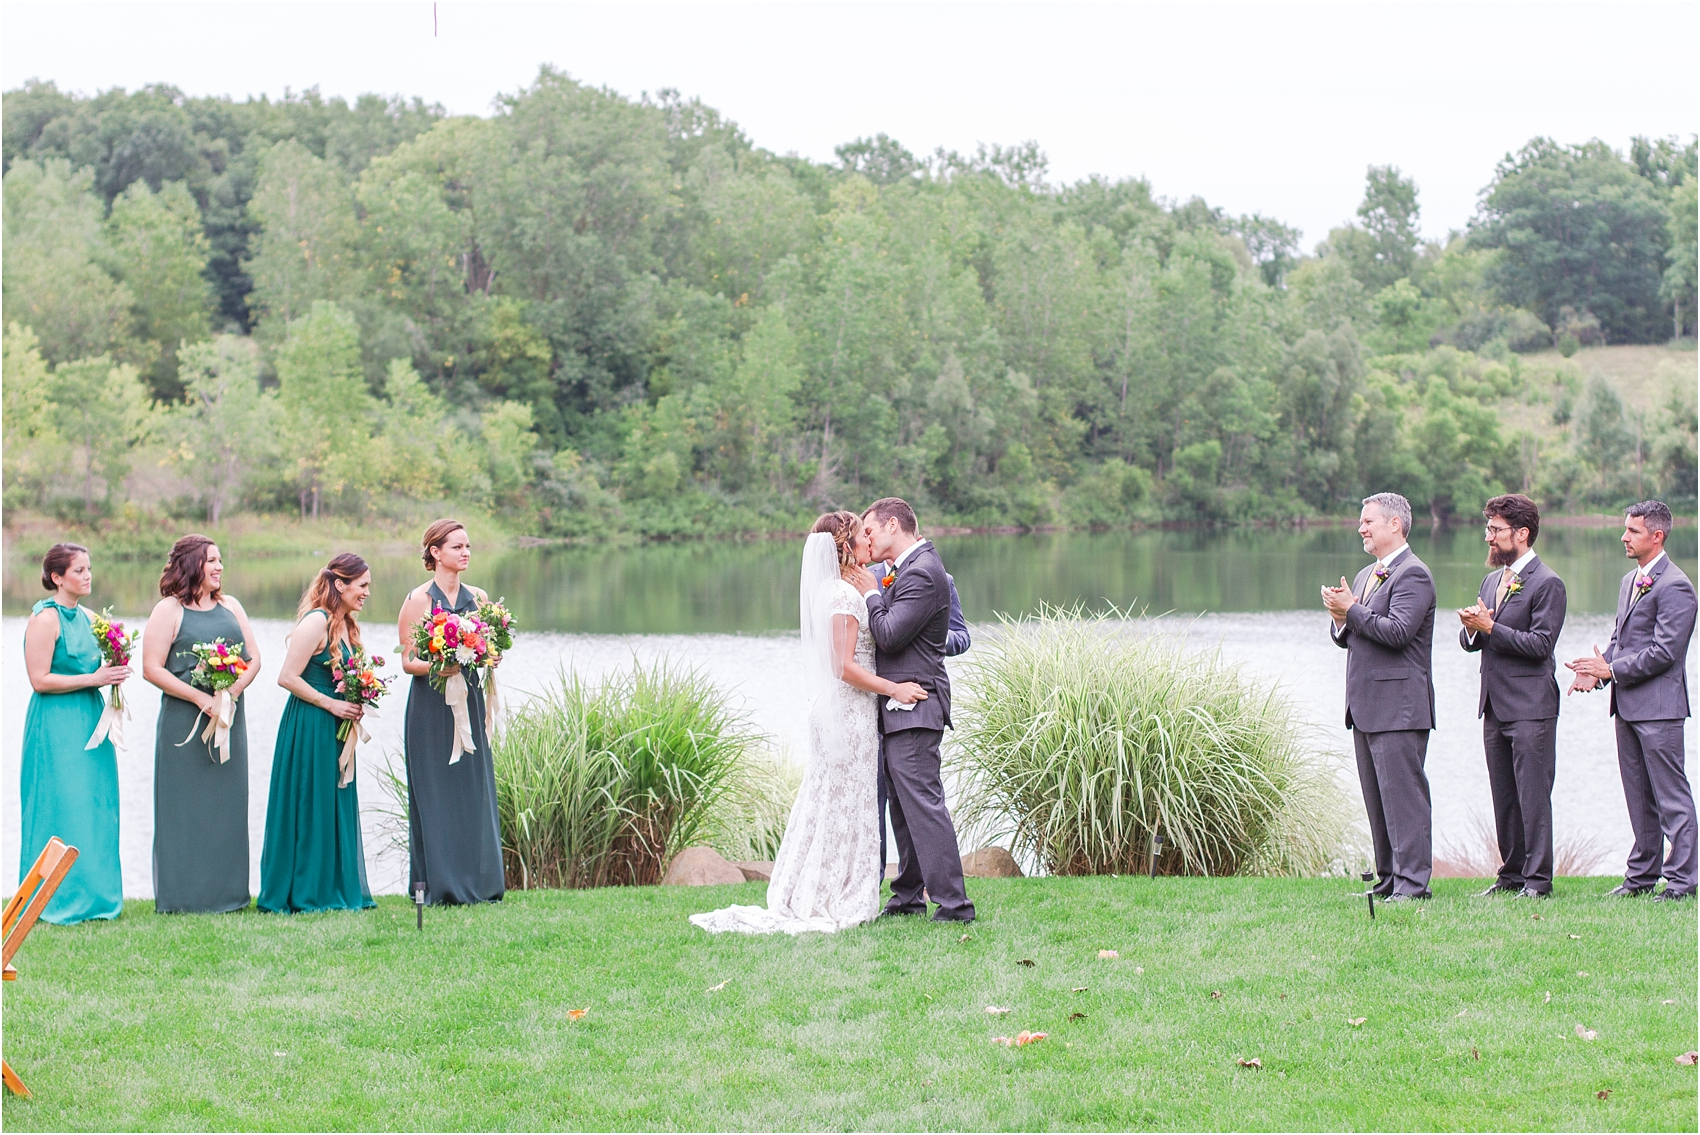 romantic-intimate-backyard-wedding-photos-at-private-estate-in-ann-arbor-mi-by-courtney-carolyn-photography_0109.jpg